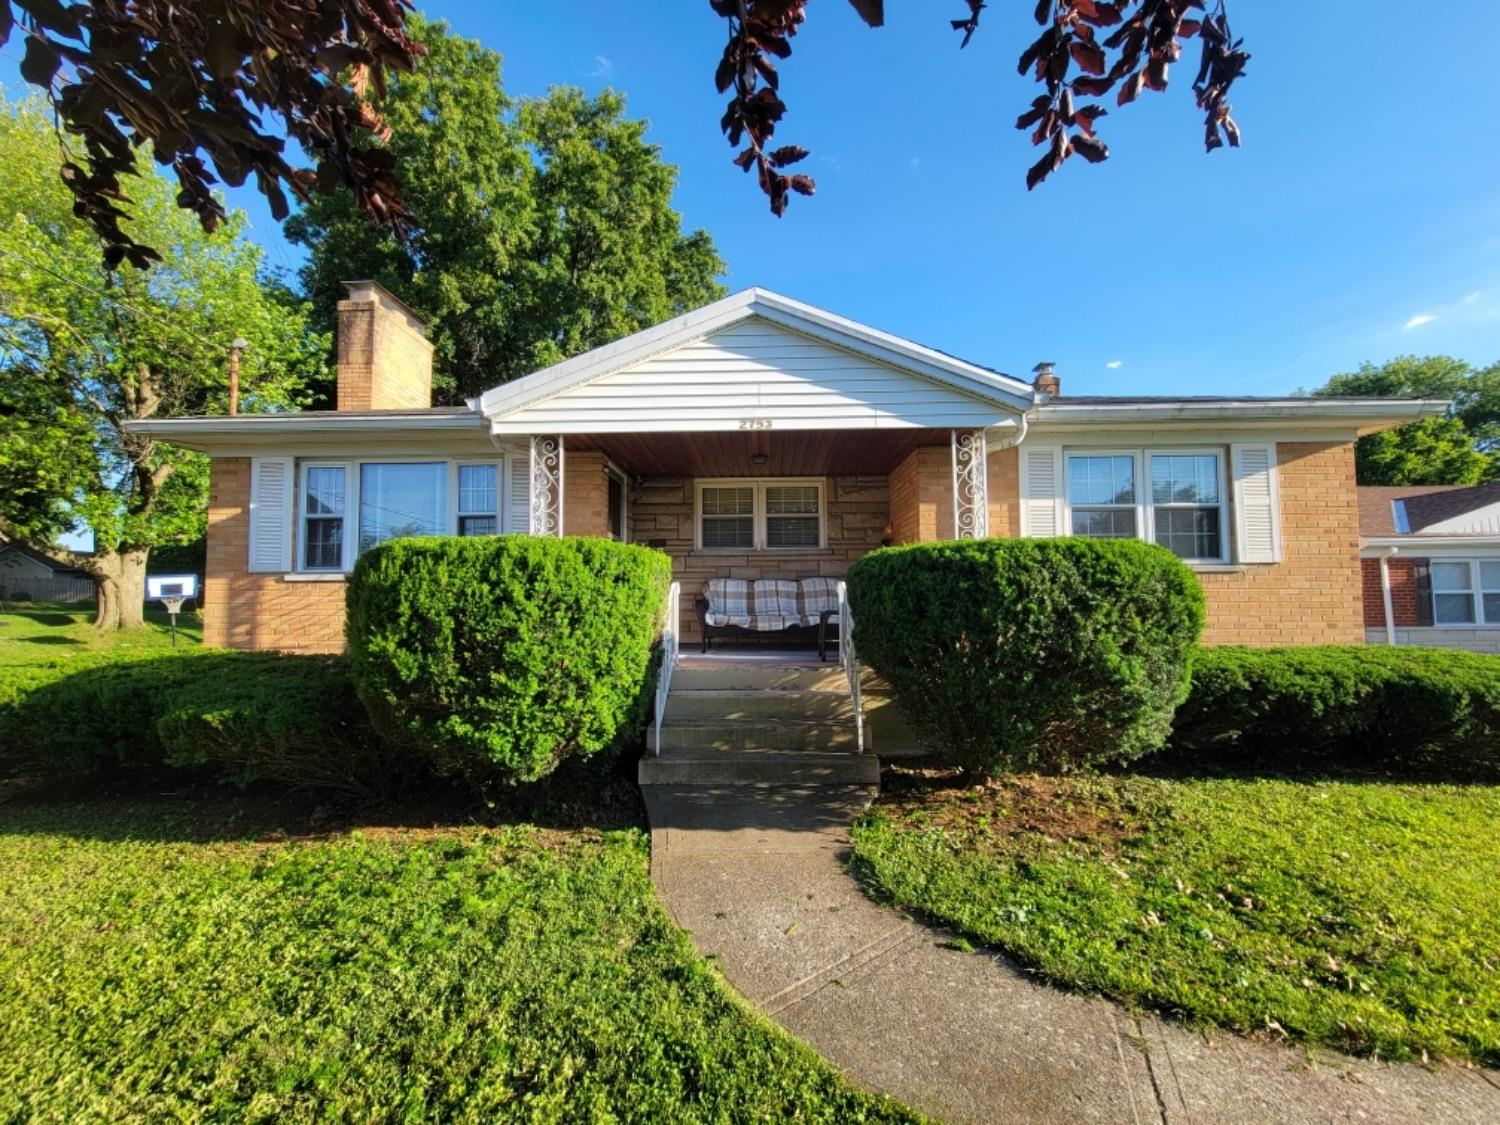 Photo 3 for 2753 Mt Airy Avenue Mt. Airy, OH 45239